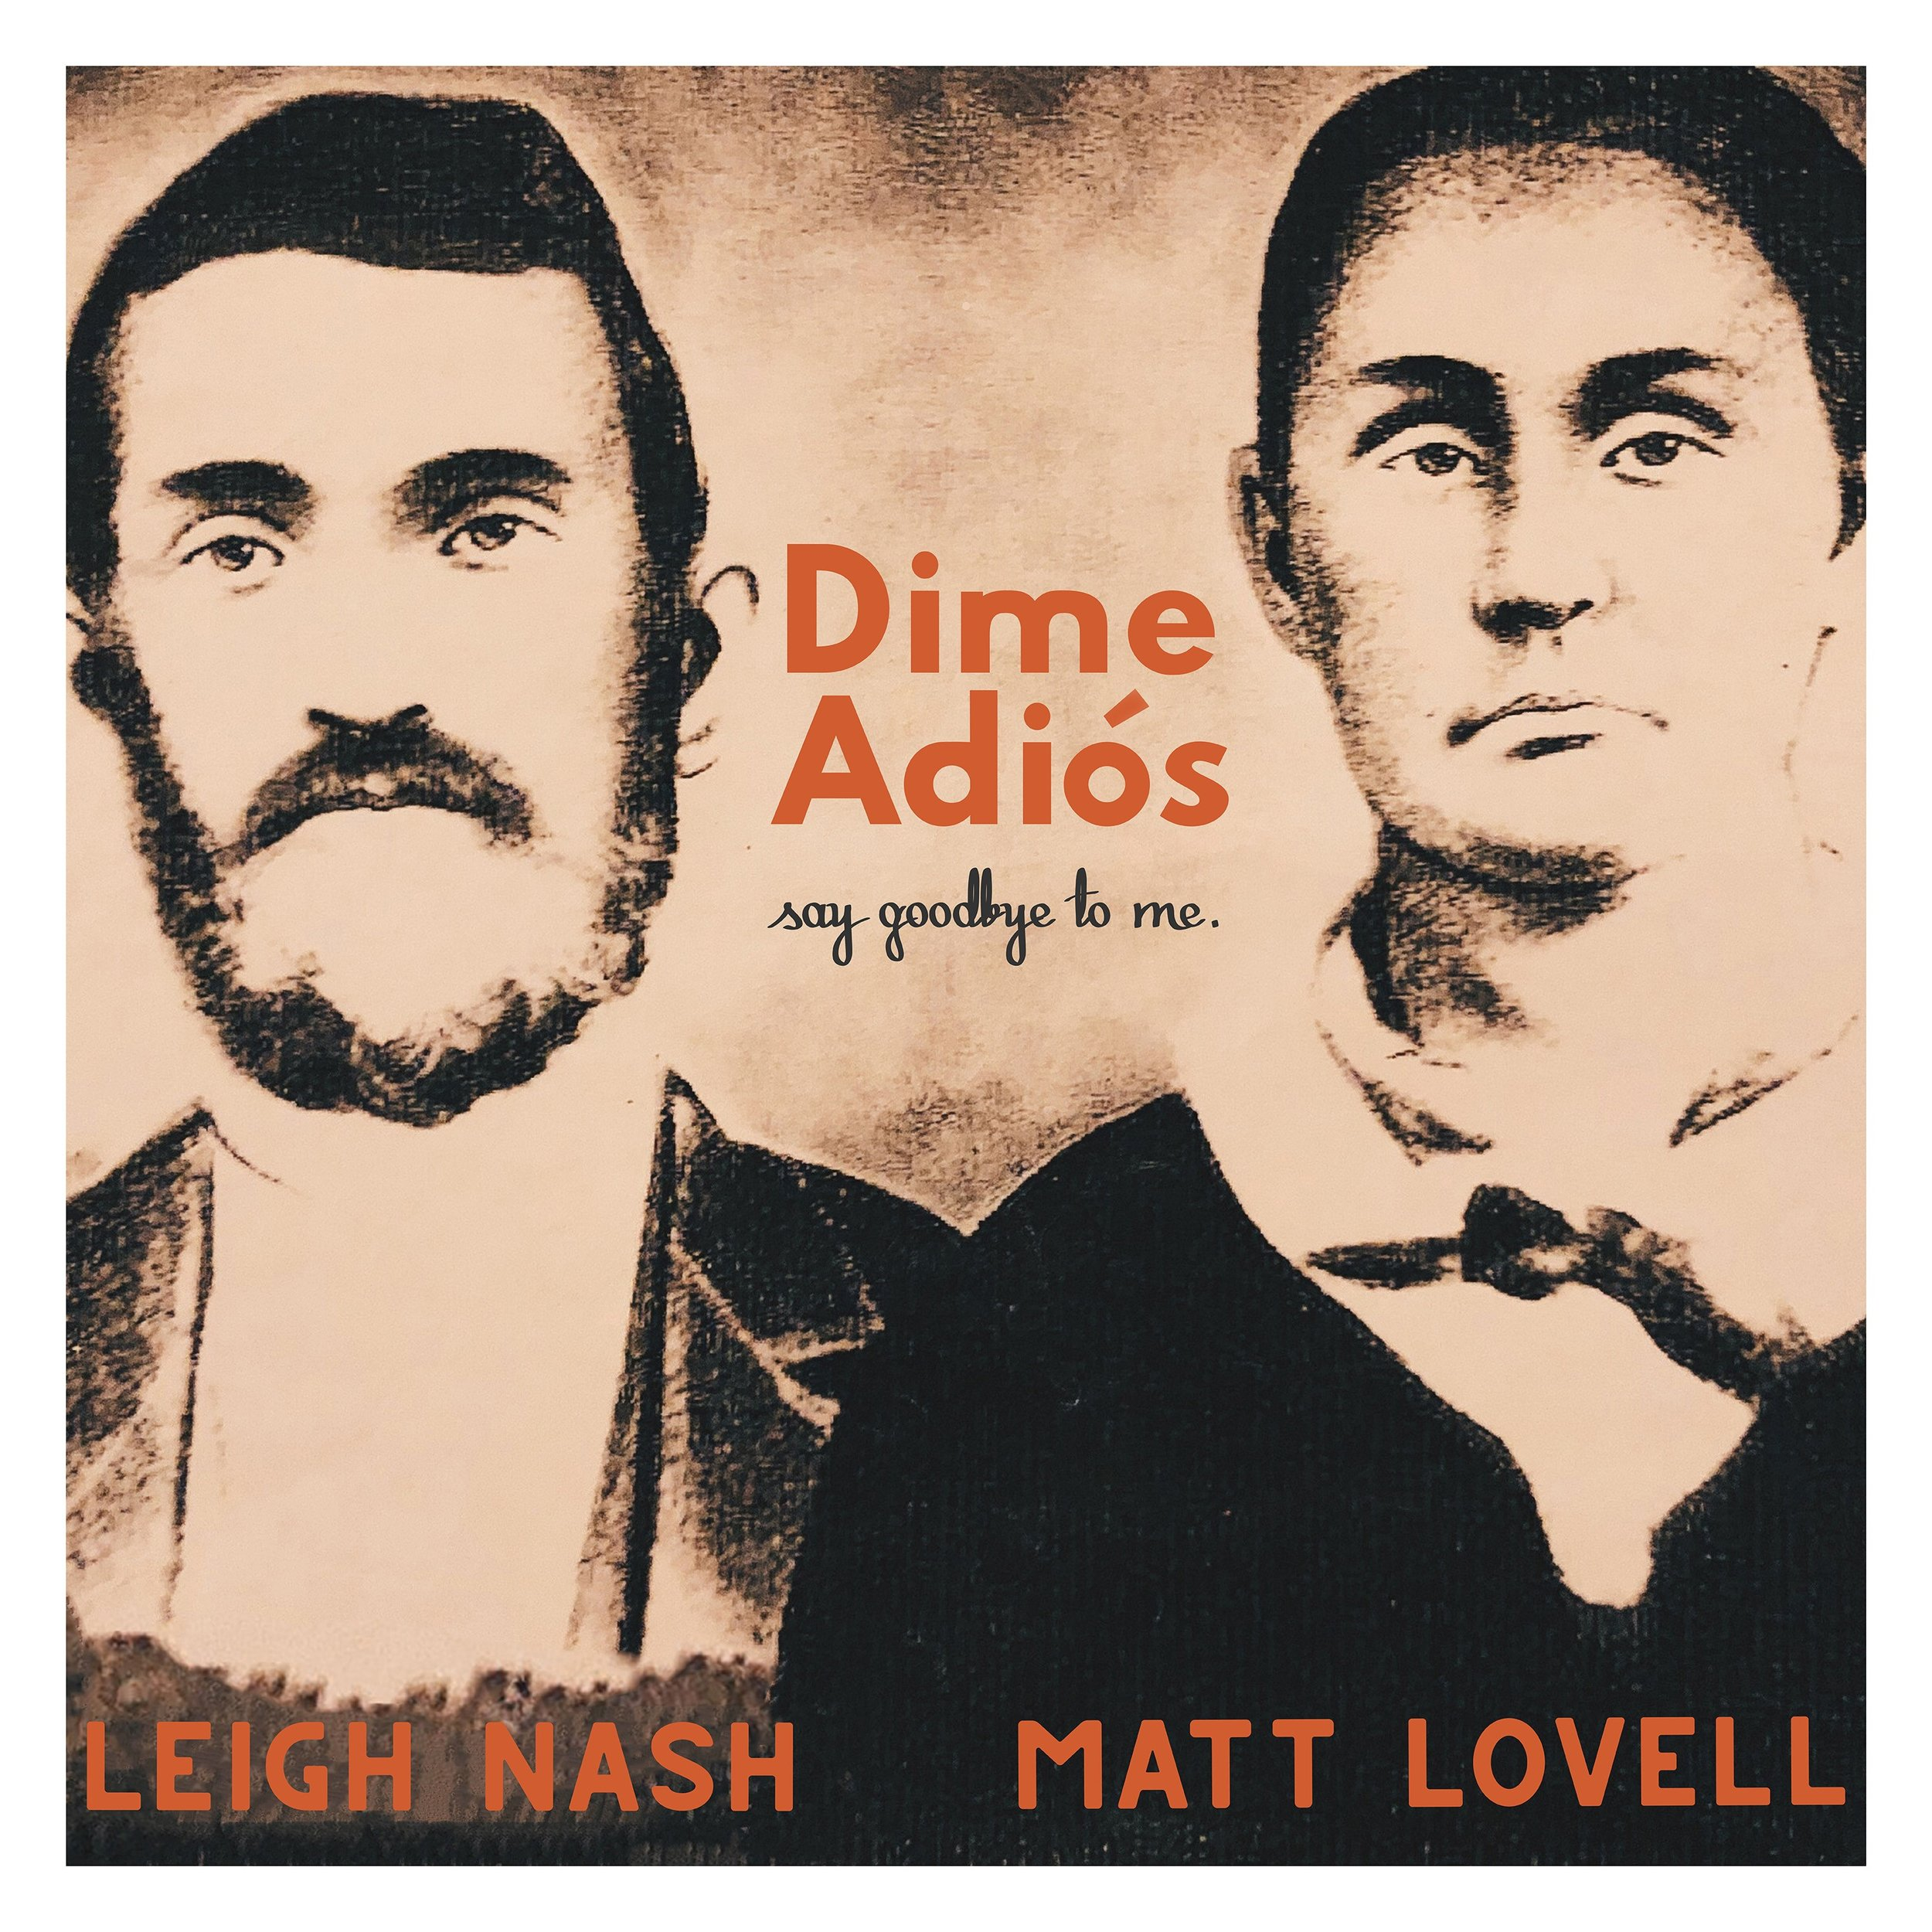 DimeAdios_Cover_Nash_Lovell.jpg